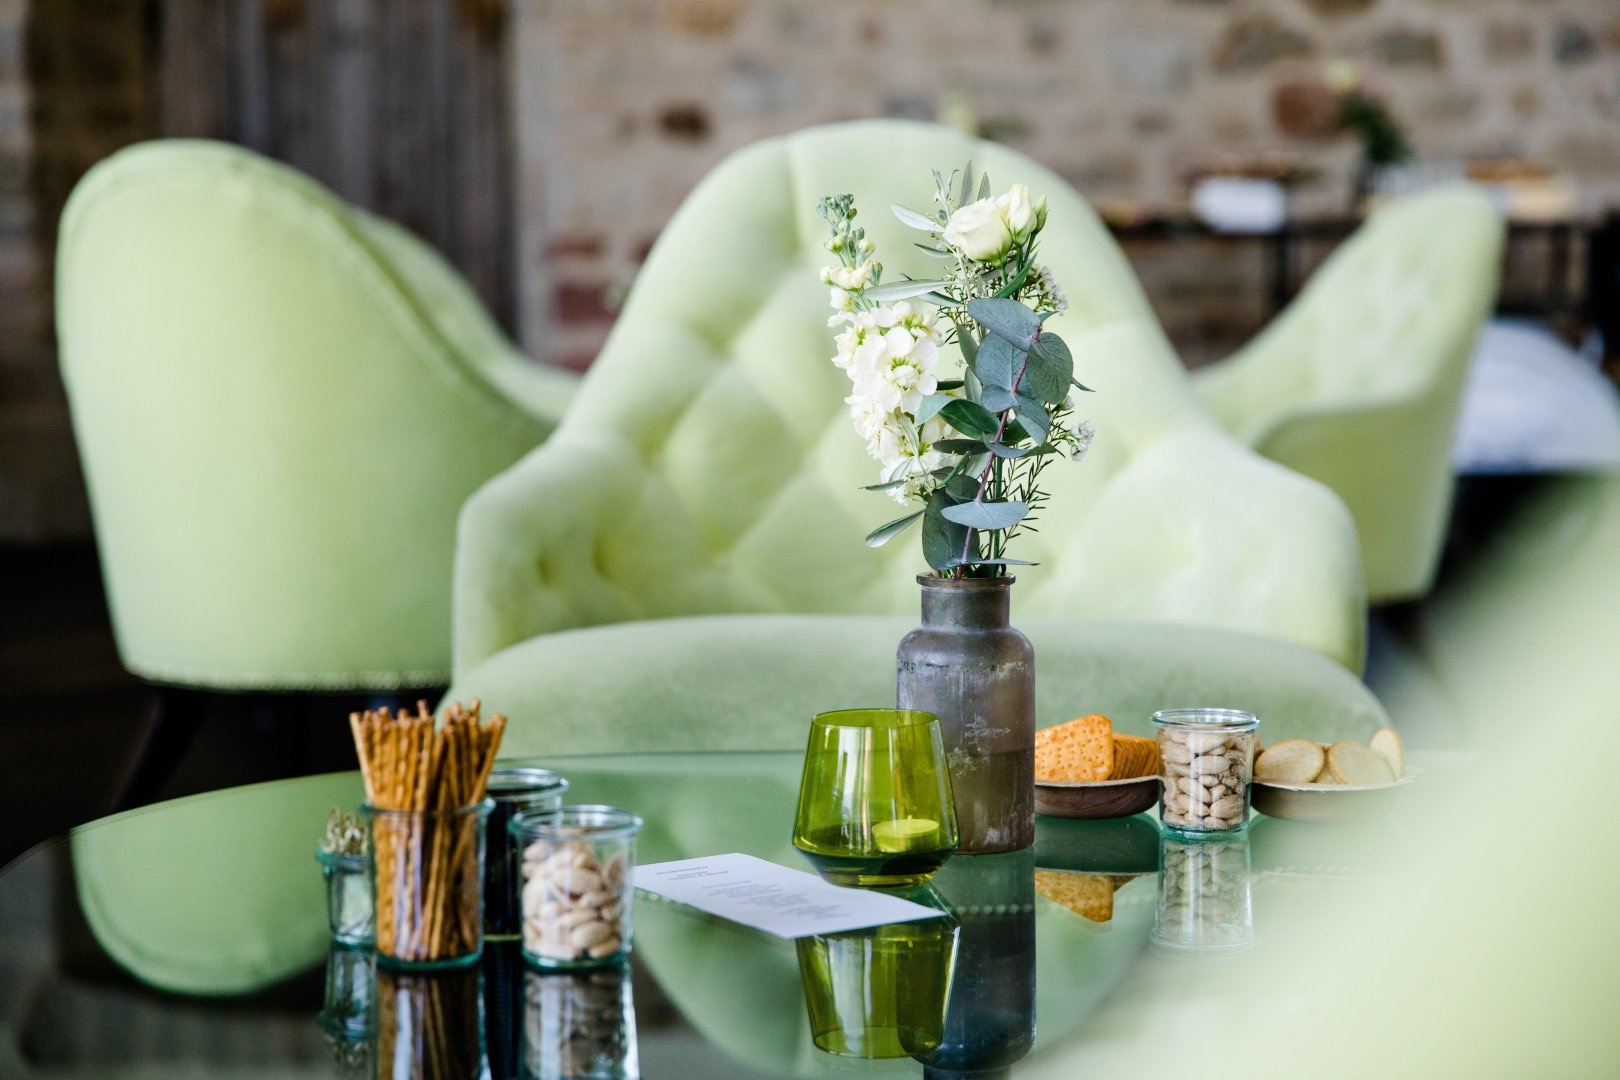 Green Yellow Table Room Flower Plant Centrepiece Interior design Furniture